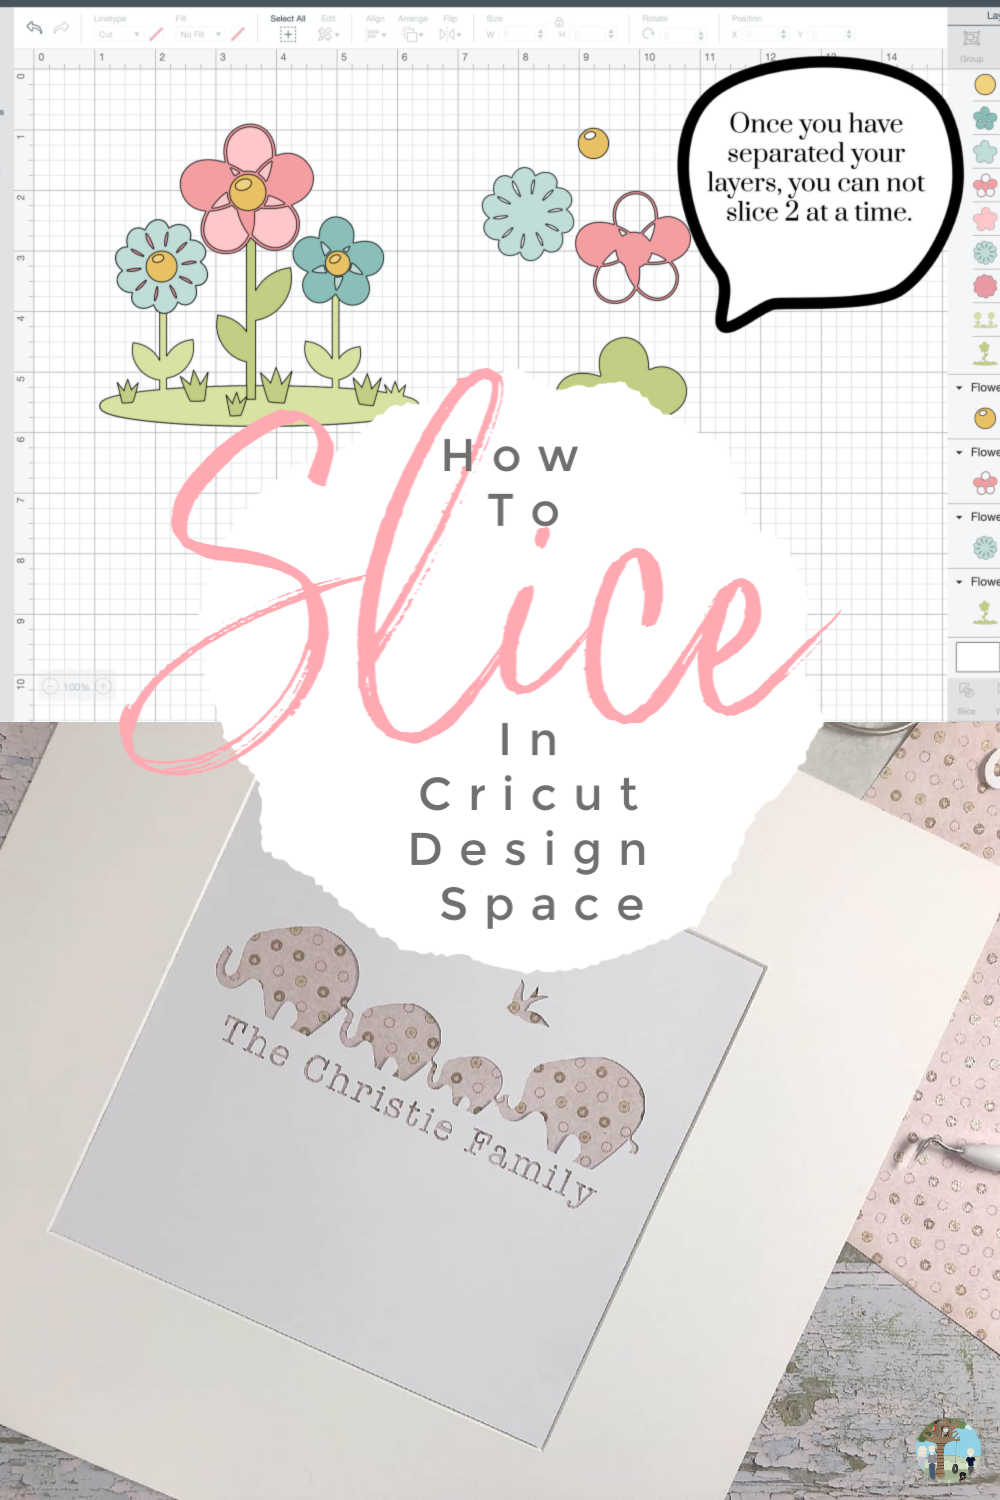 How to slice in Cricut Design Space and what to do if you image won't slice.